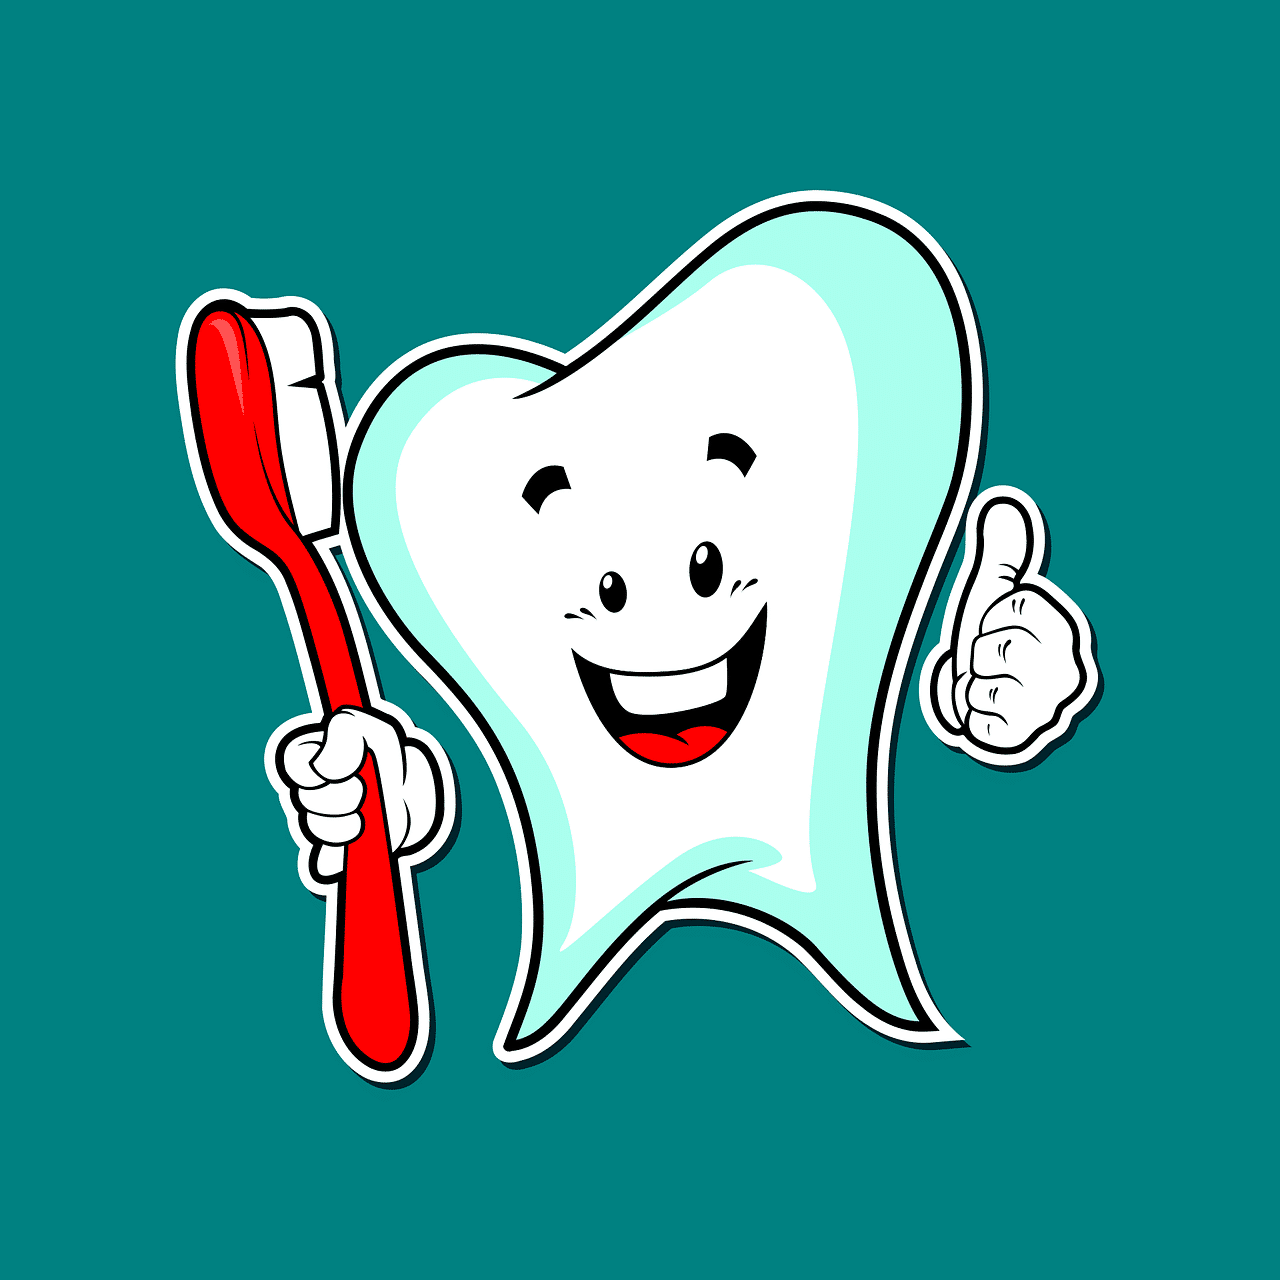 Tips to Look After Your Teeth